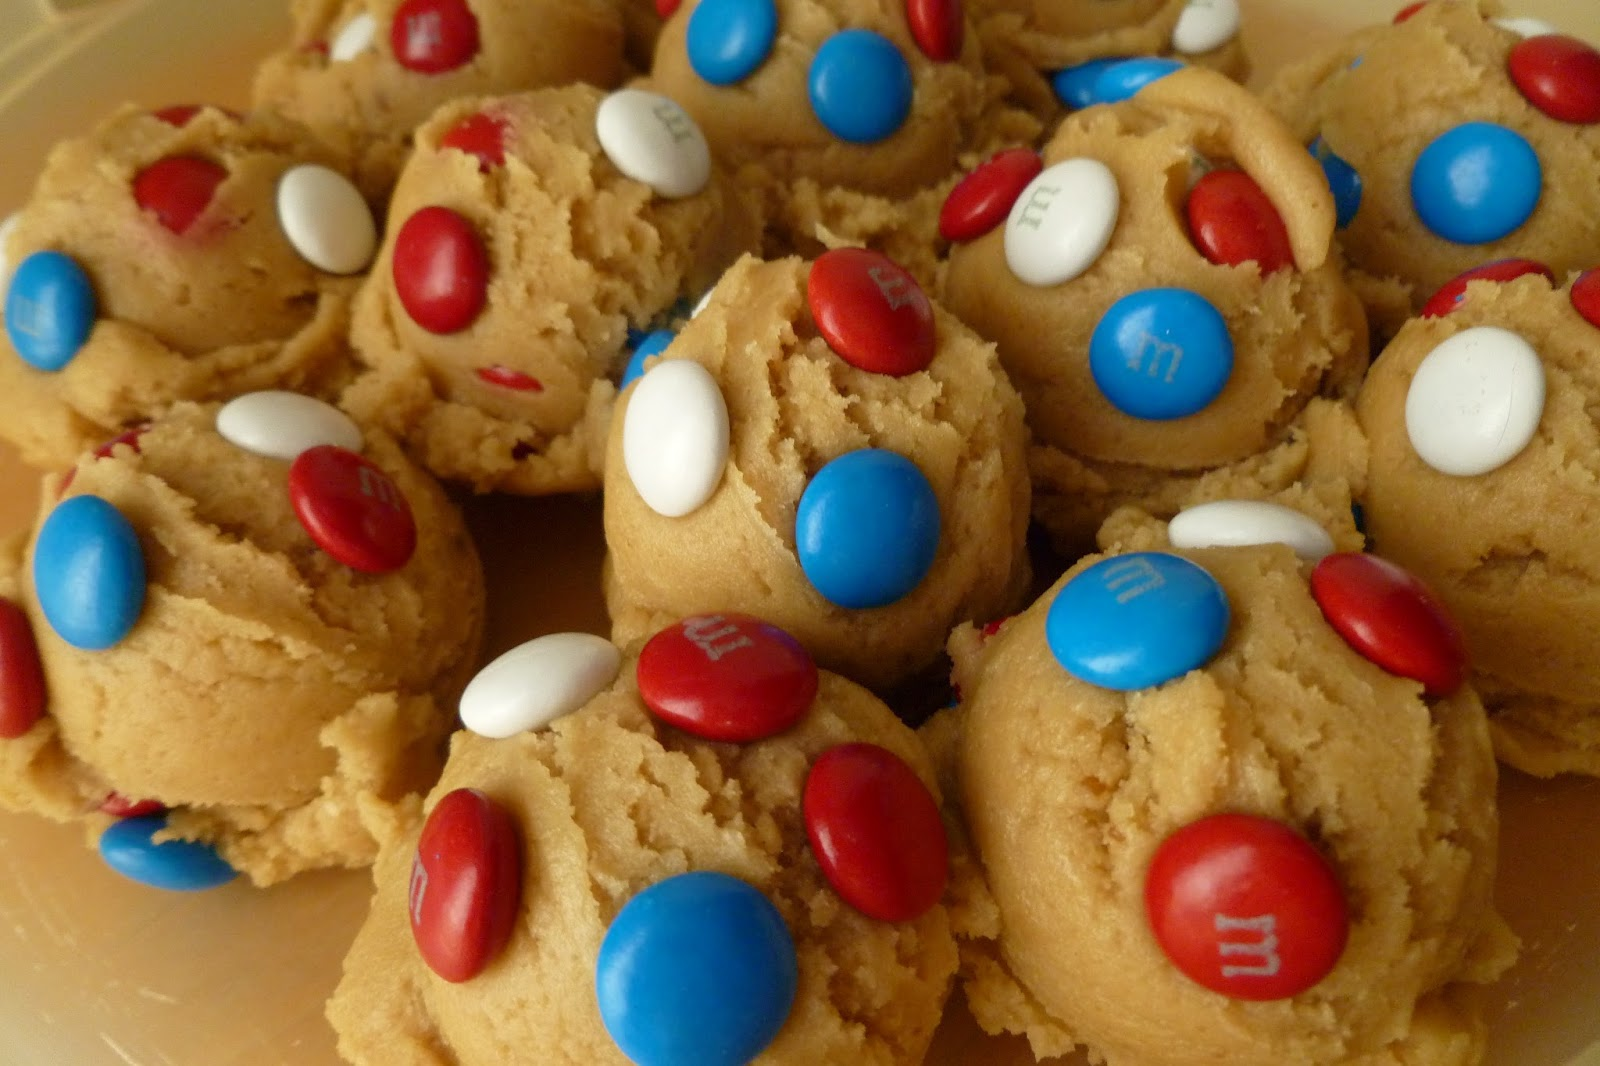 The Pastry Chef's Baking: Fireworks Pudding Cookies